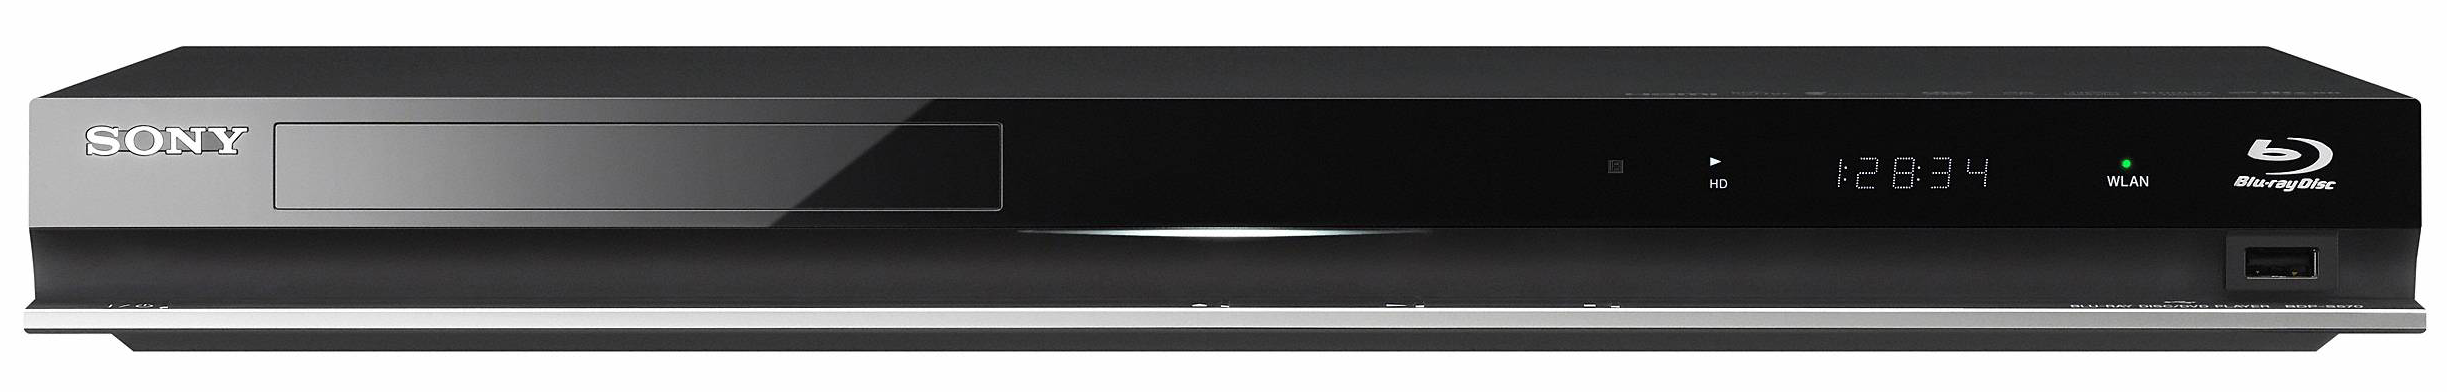 Blu Ray Player Images Regular Blu-ray Player